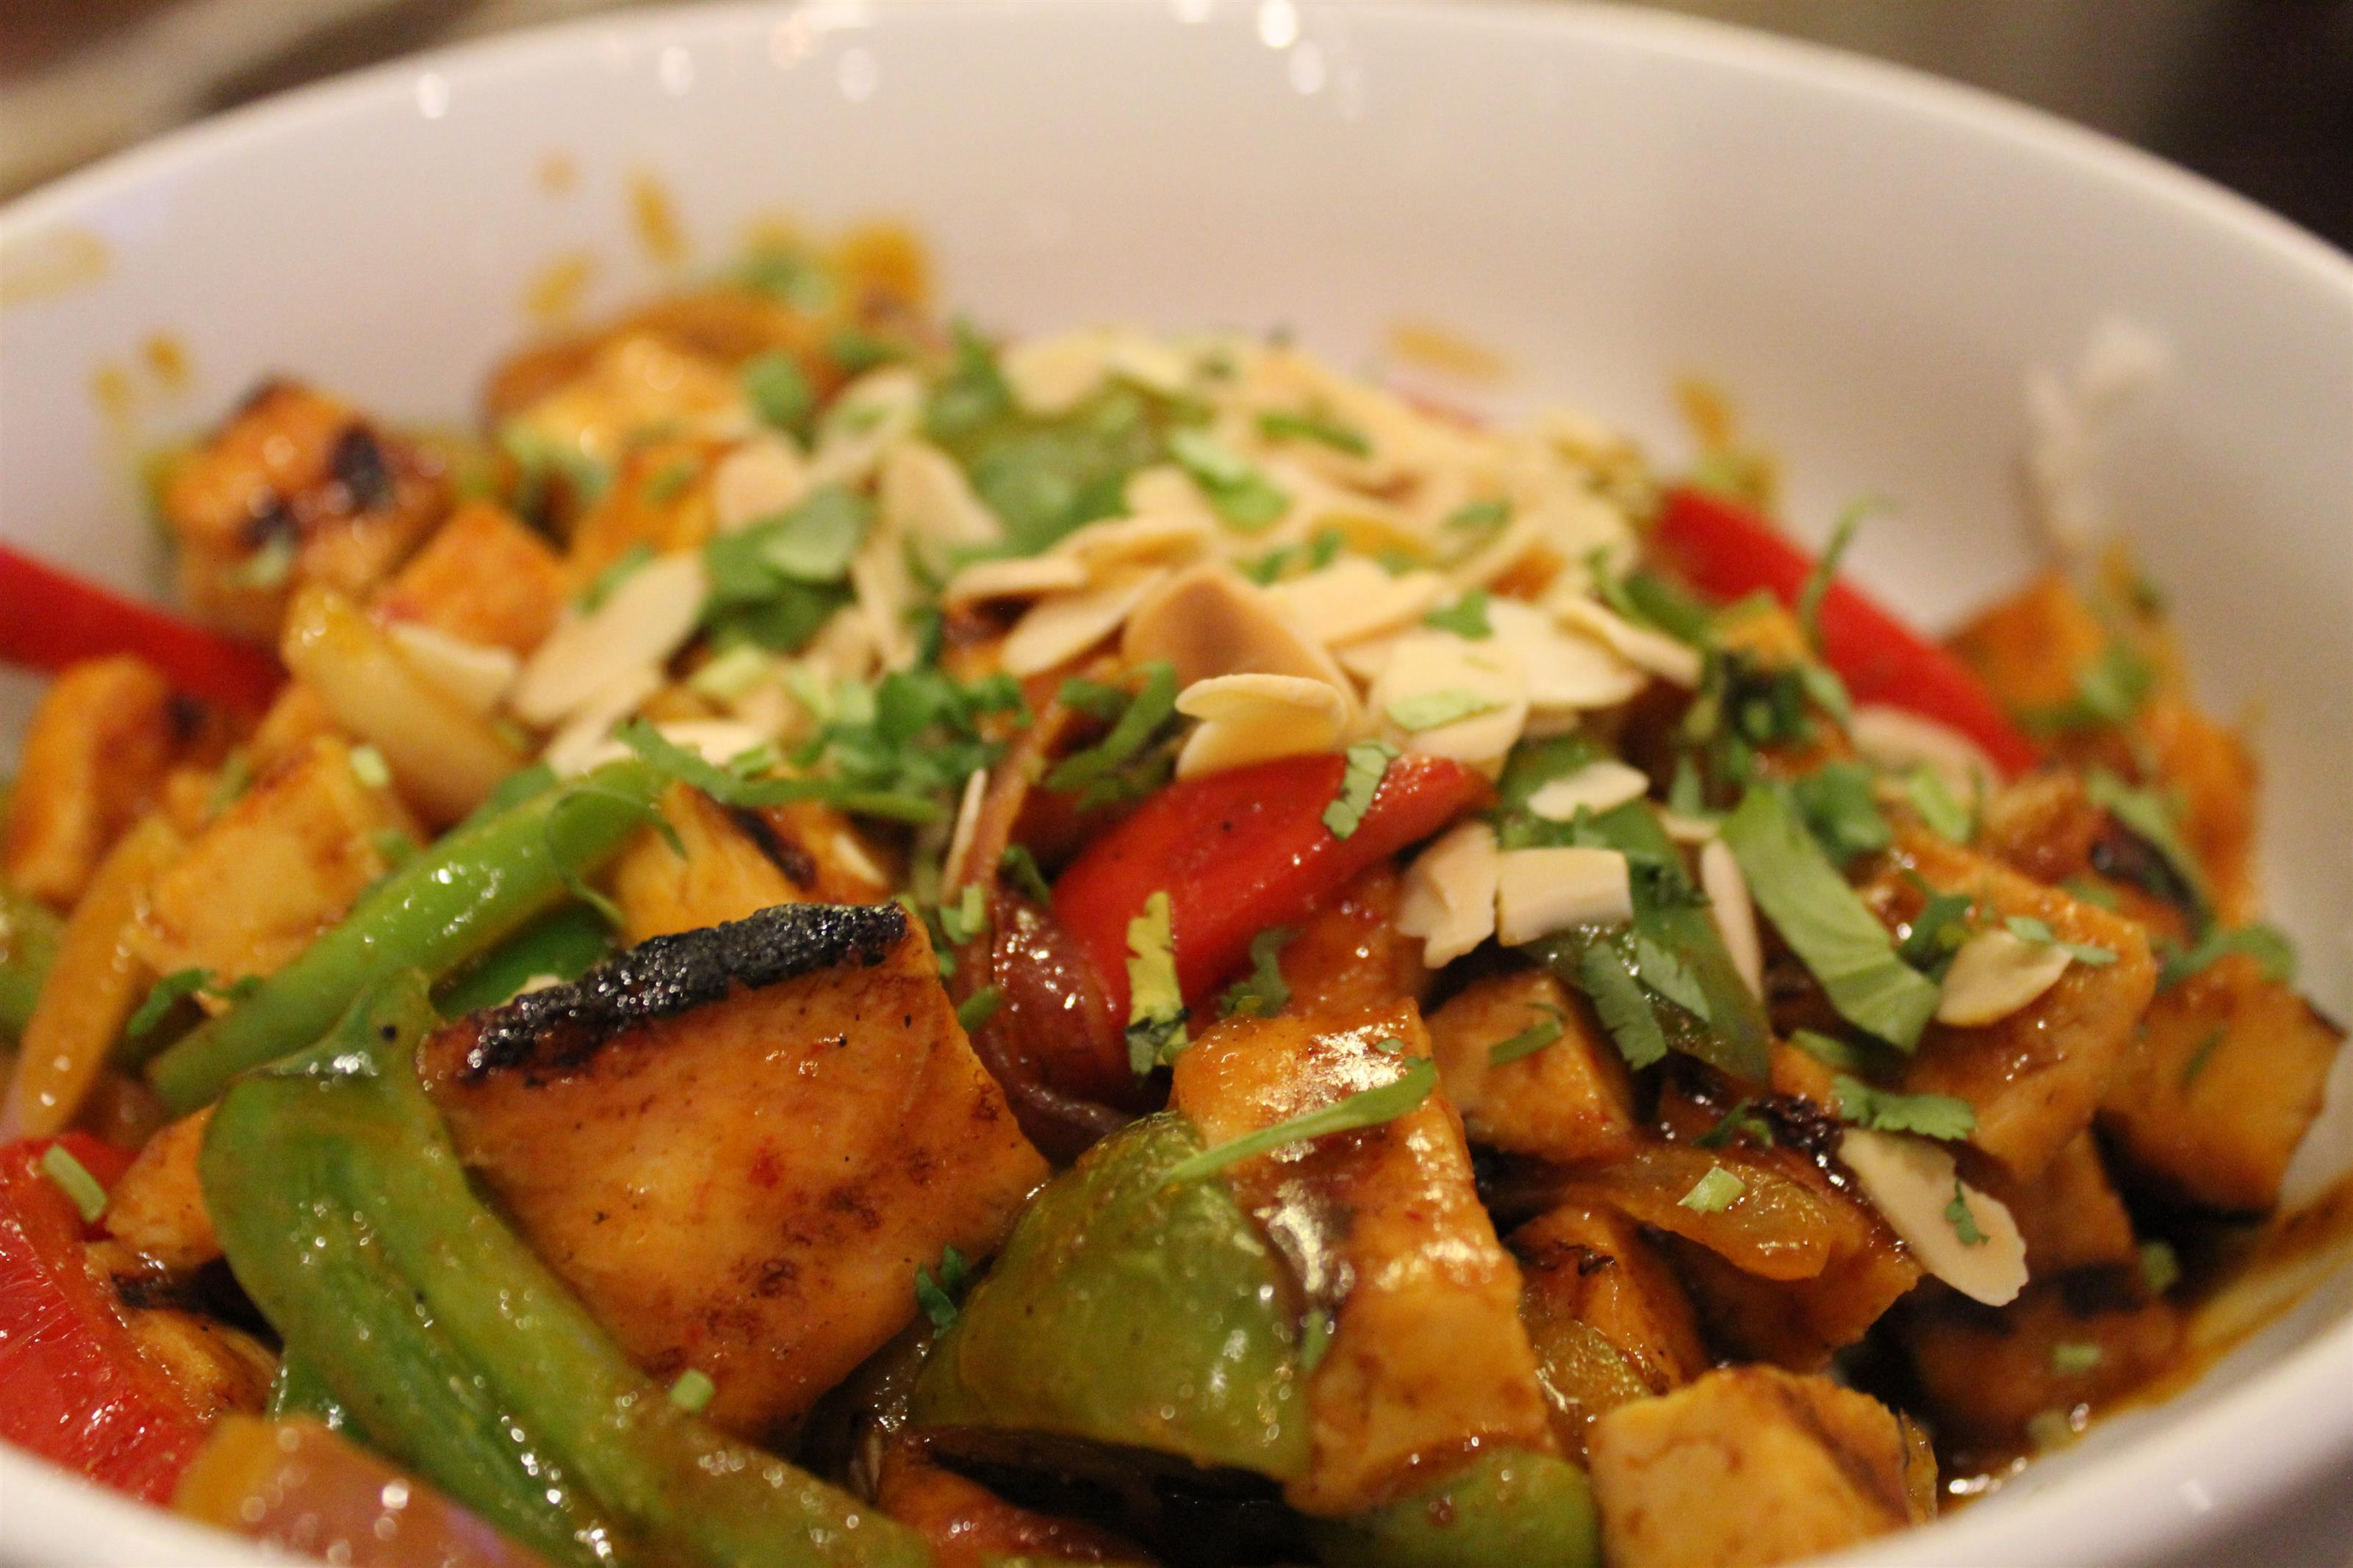 Coconut Curry. Grilled chicken, Curry sauce, onions, peppers, carrots, tomatillos, almonds, cilantro & fresh jasmine rice